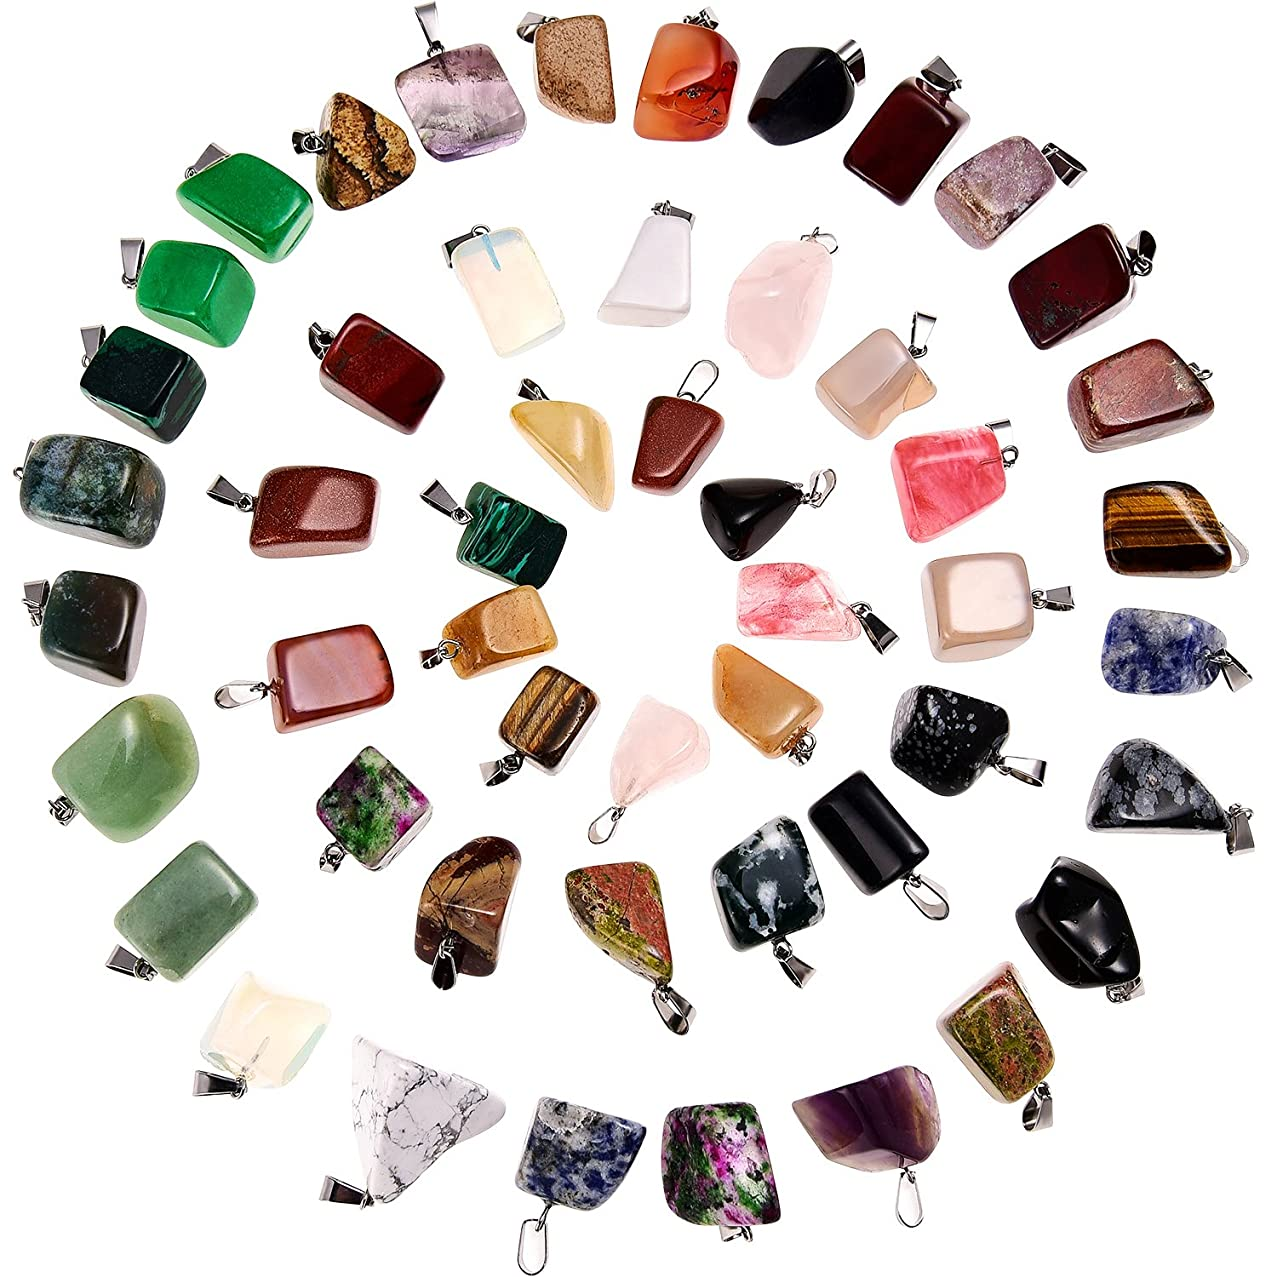 50 Pieces Mixed Irregular Healing Stone Beads Bullet Shape Crystal Stone Pendants Quartz Charms with Storage Bag for Jewelry Making (Style 1)